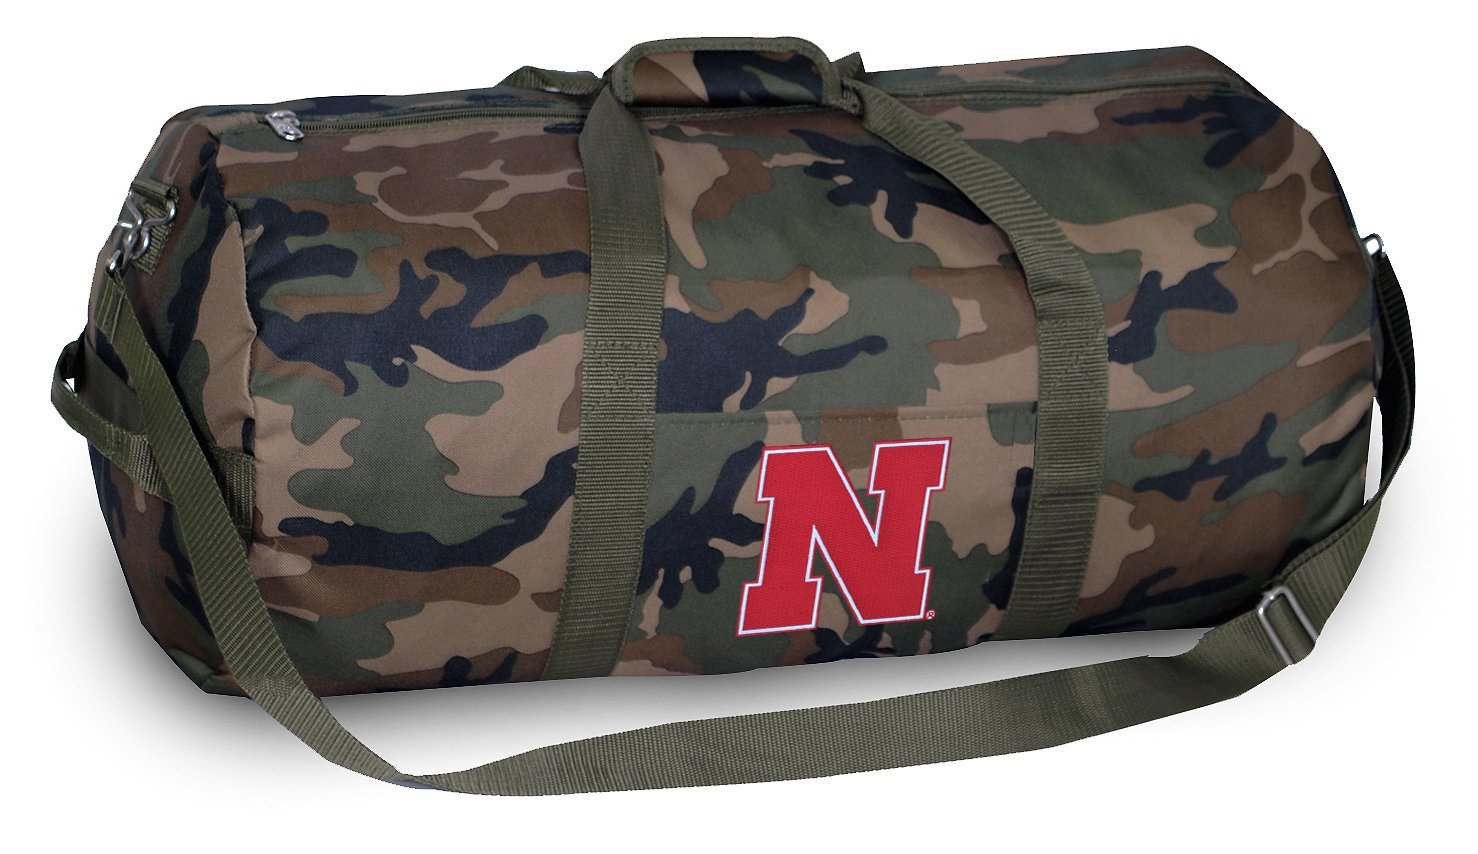 Nebraska Huskers CAMO Duffle Bag University of Nebraska Duffel Suitcase Luggage